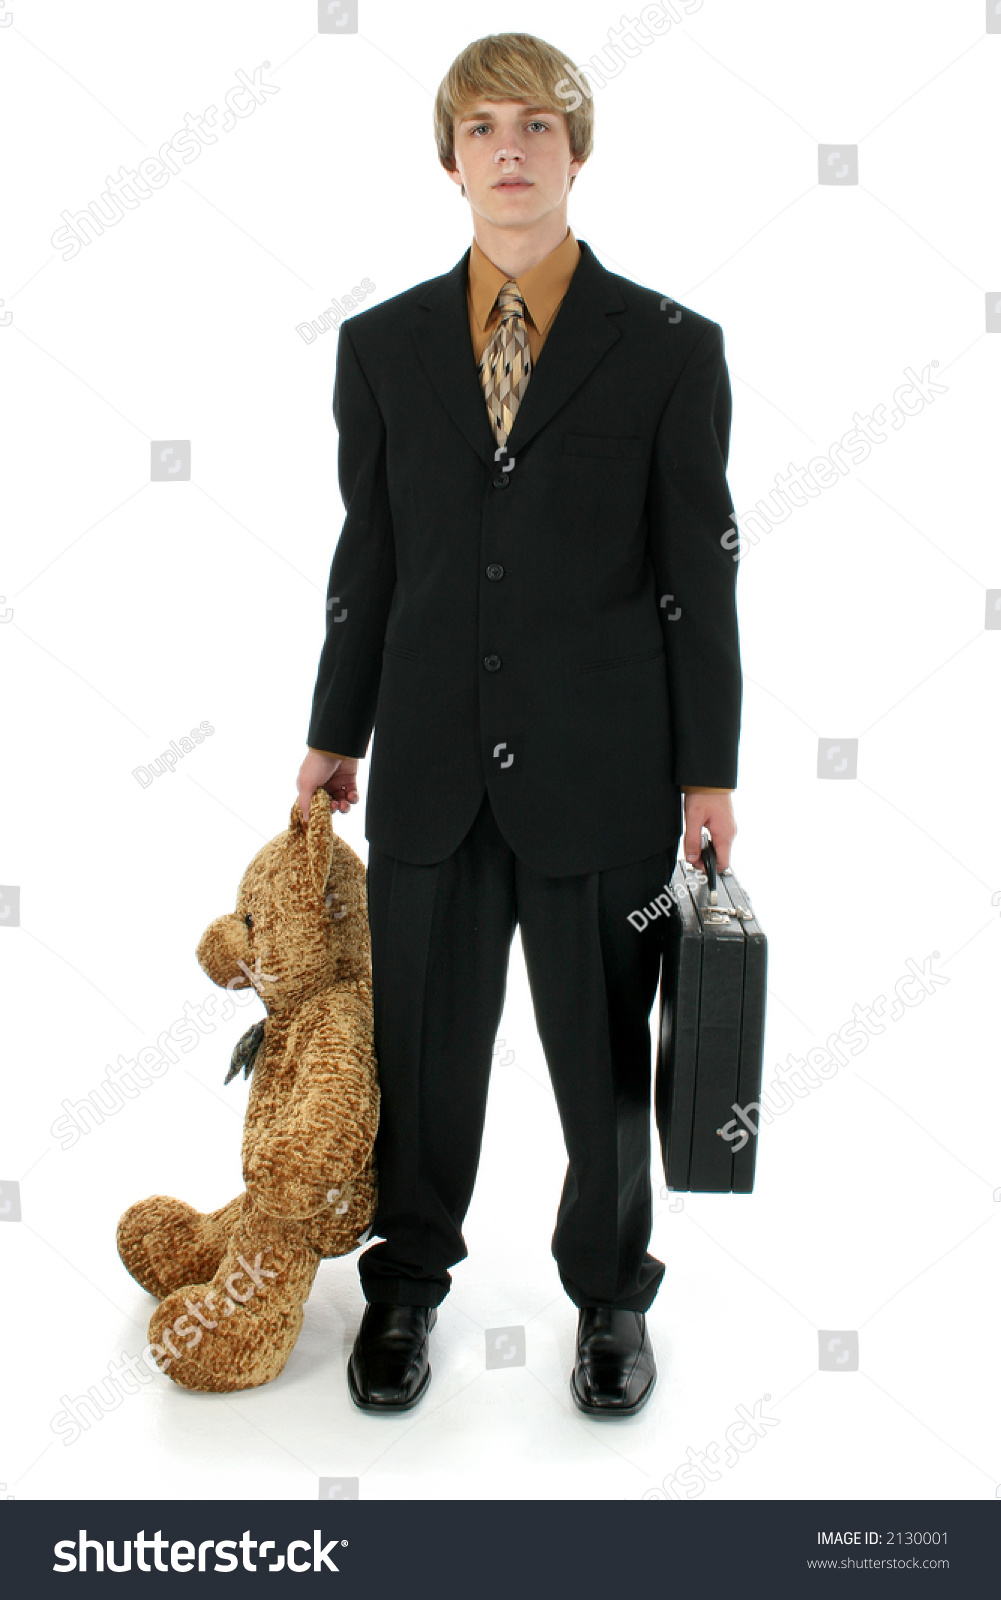 young teen business man briefcase large stock photo  young teen business man briefcase an large bear